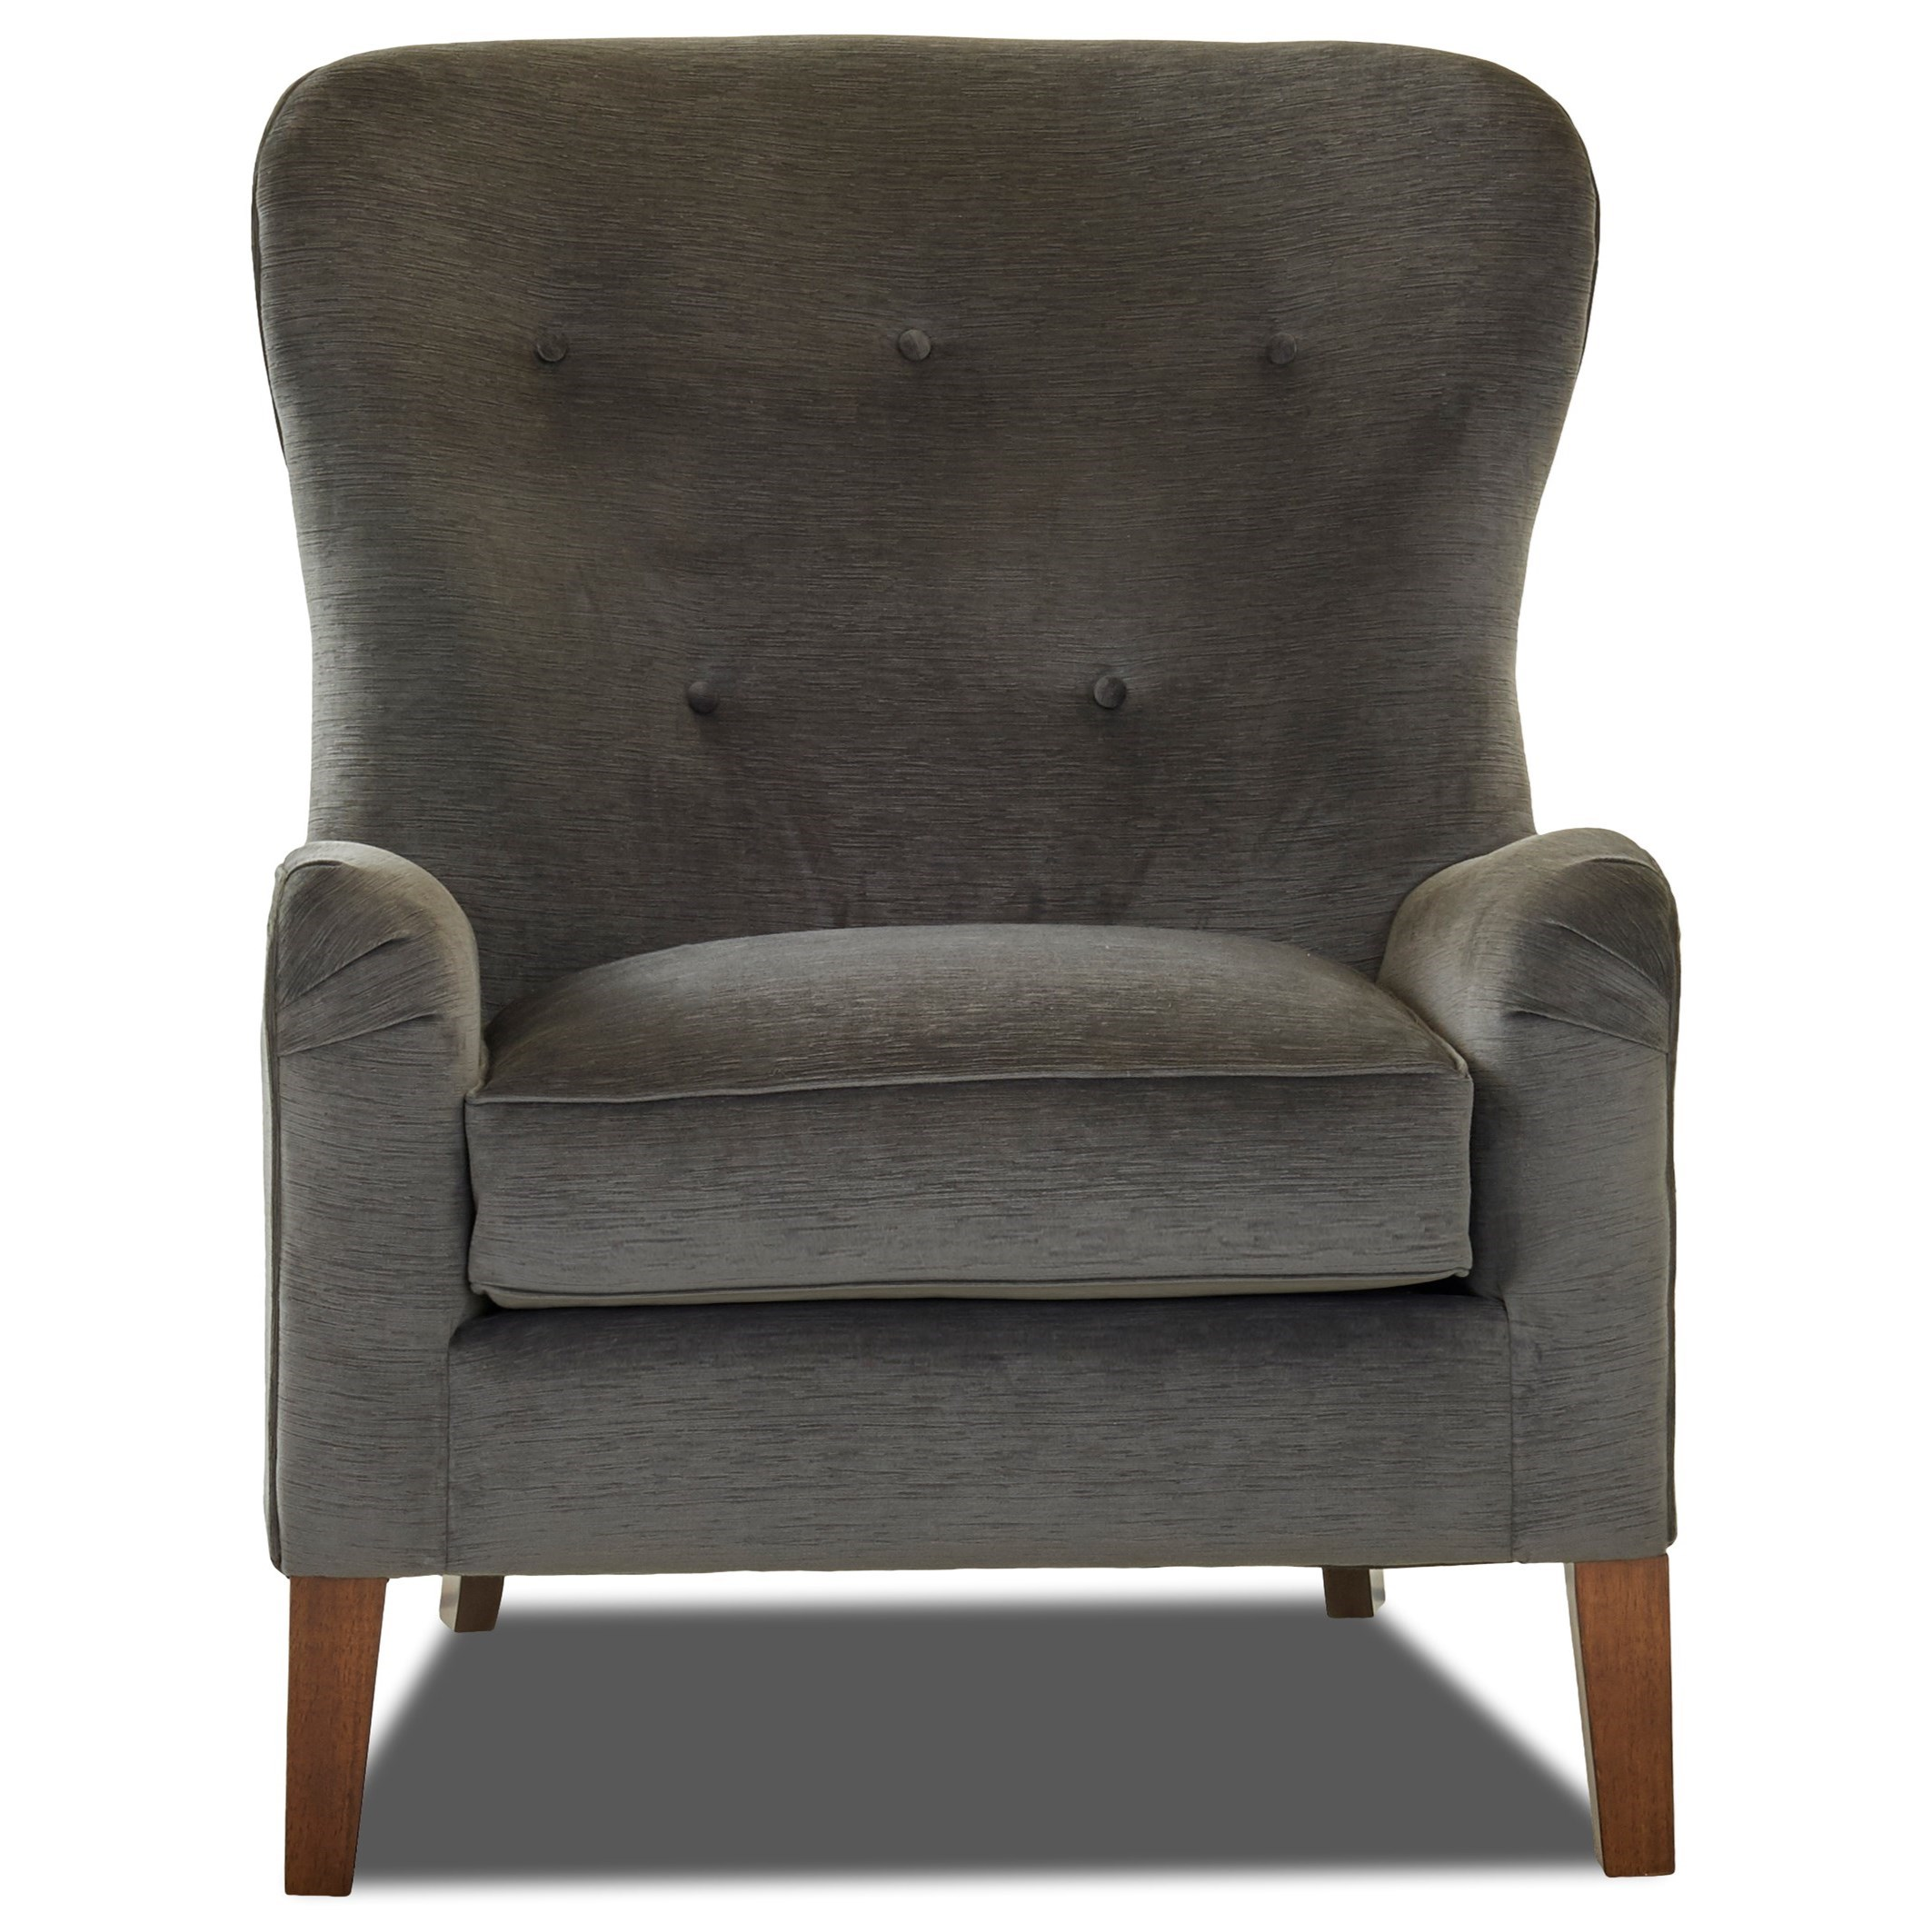 Wingback Tufted Chair Chairs And Accents Annabel Wing Back Chair With Button Tufting By Klaussner At Novello Home Furnishings